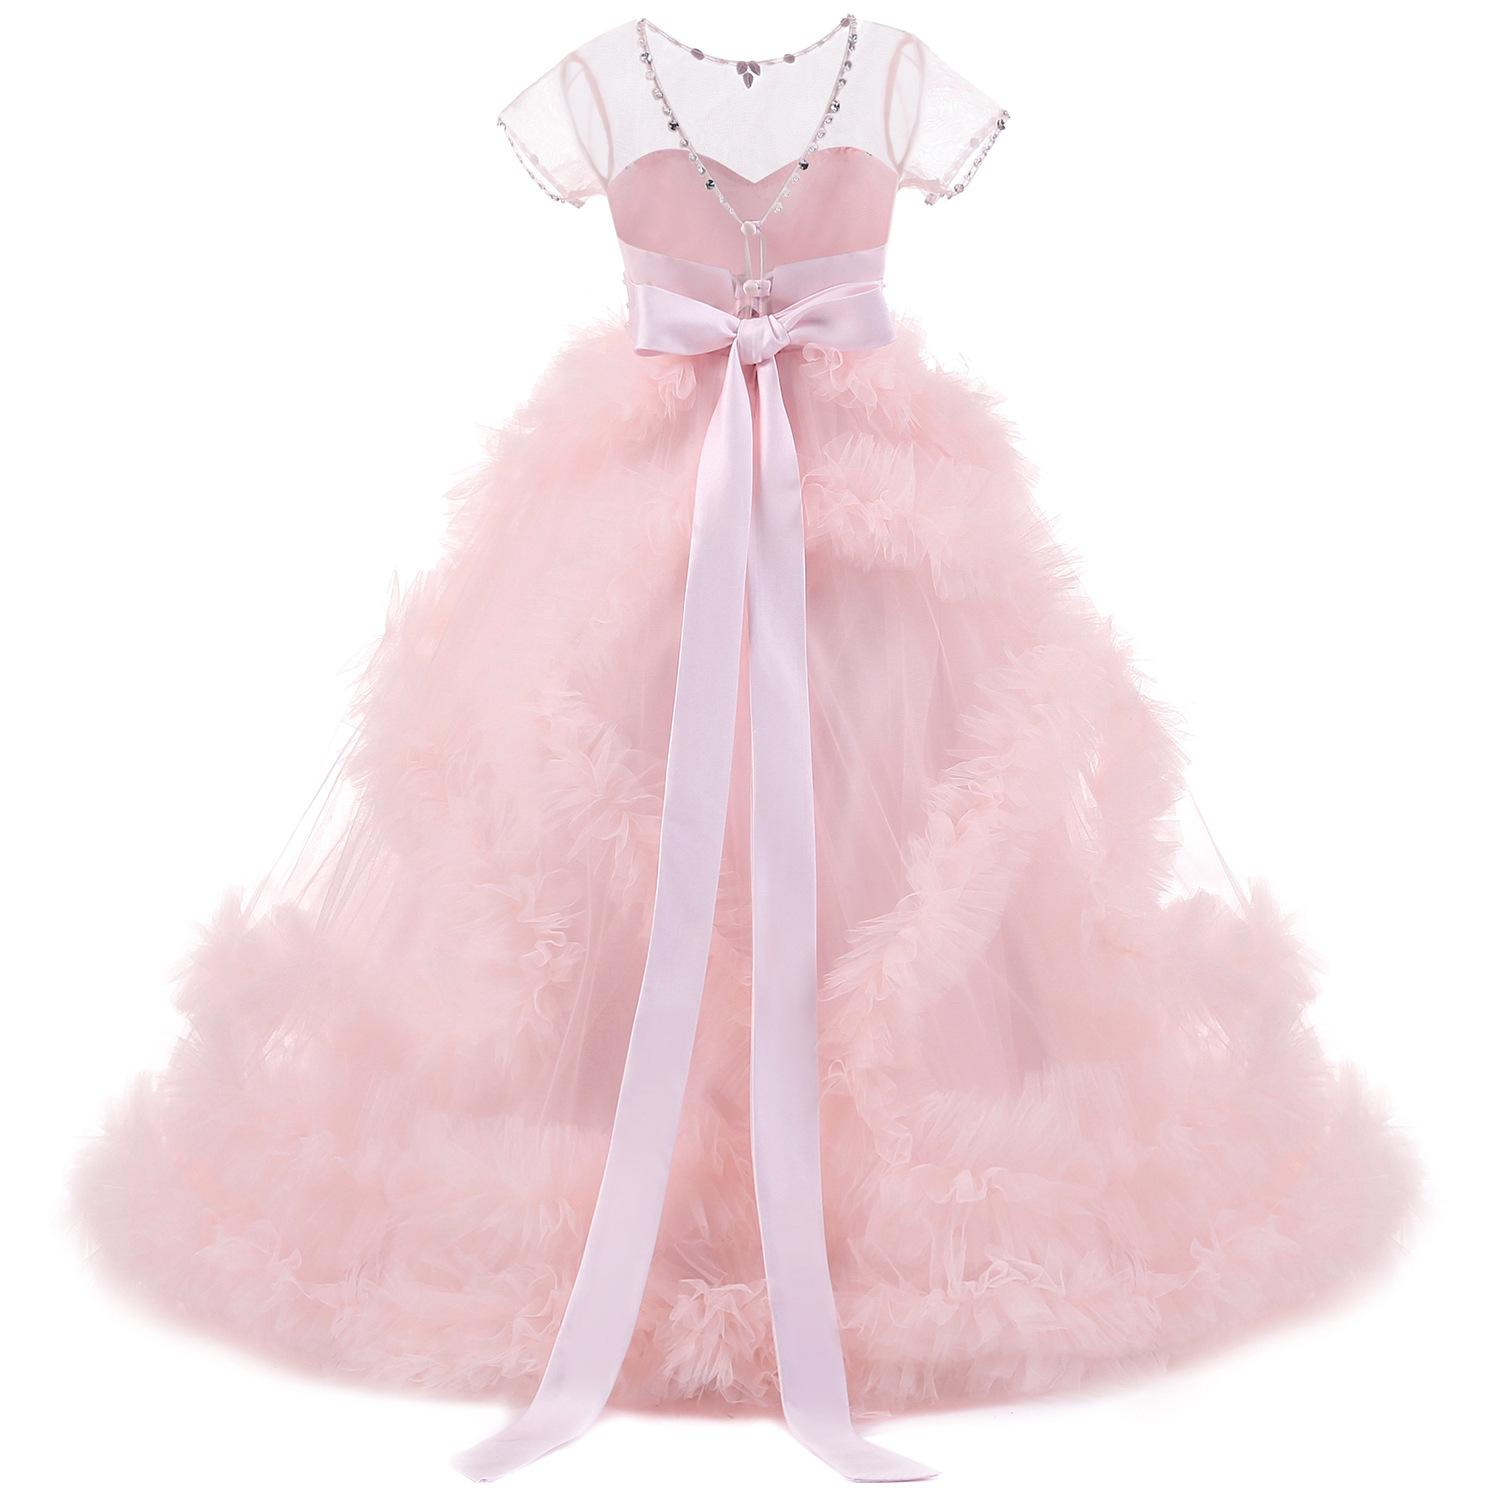 Girls Pageant Dresses Bow Flower Girl Weddings Ball Gown Princess Tulle  Children Clothes Fashion Kids Clothing New Girls Dress Online with   71.8 Piece on ... a900bf345e5f